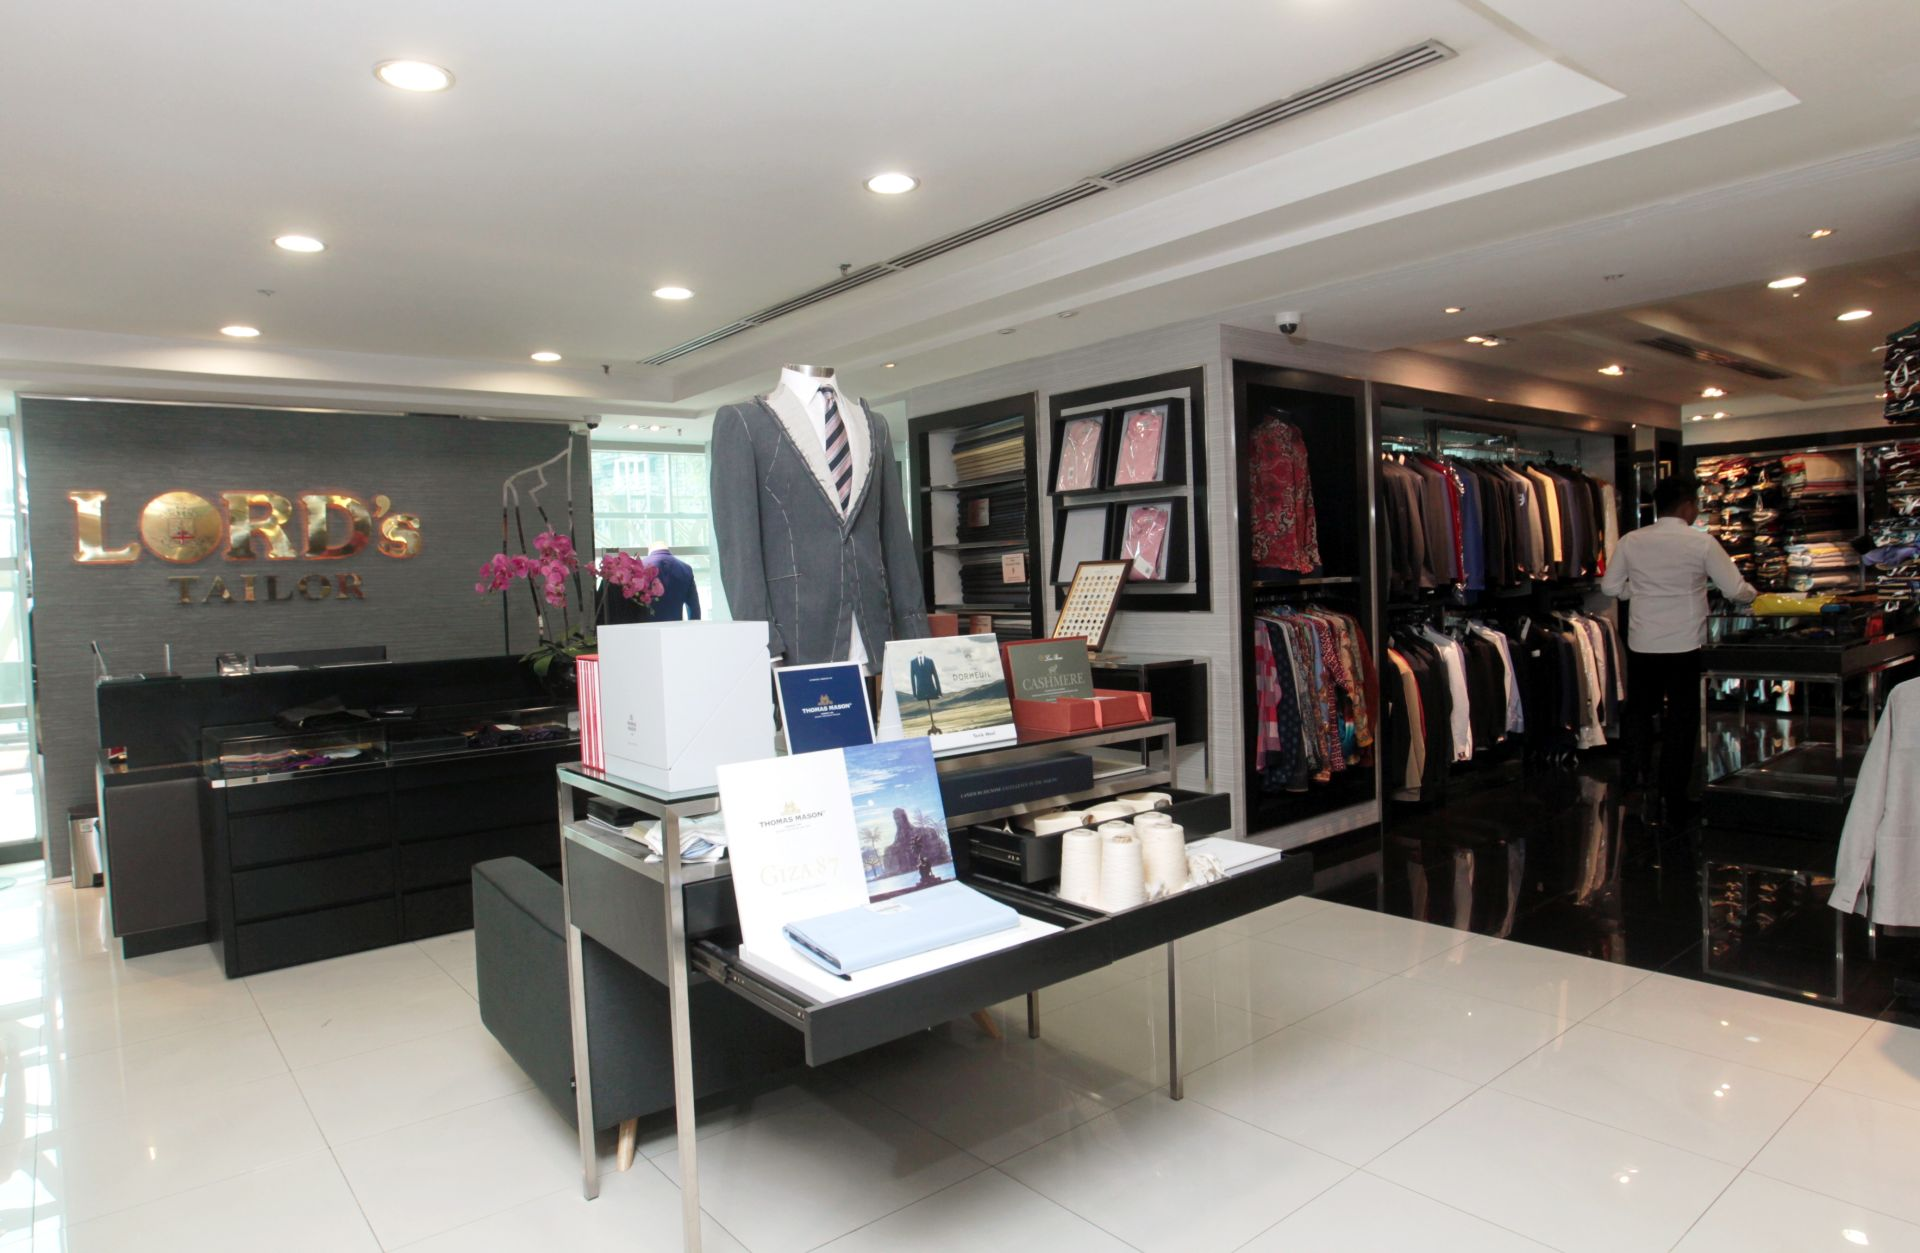 The Lord's Tailor boutique in Bangsar Shopping Centre